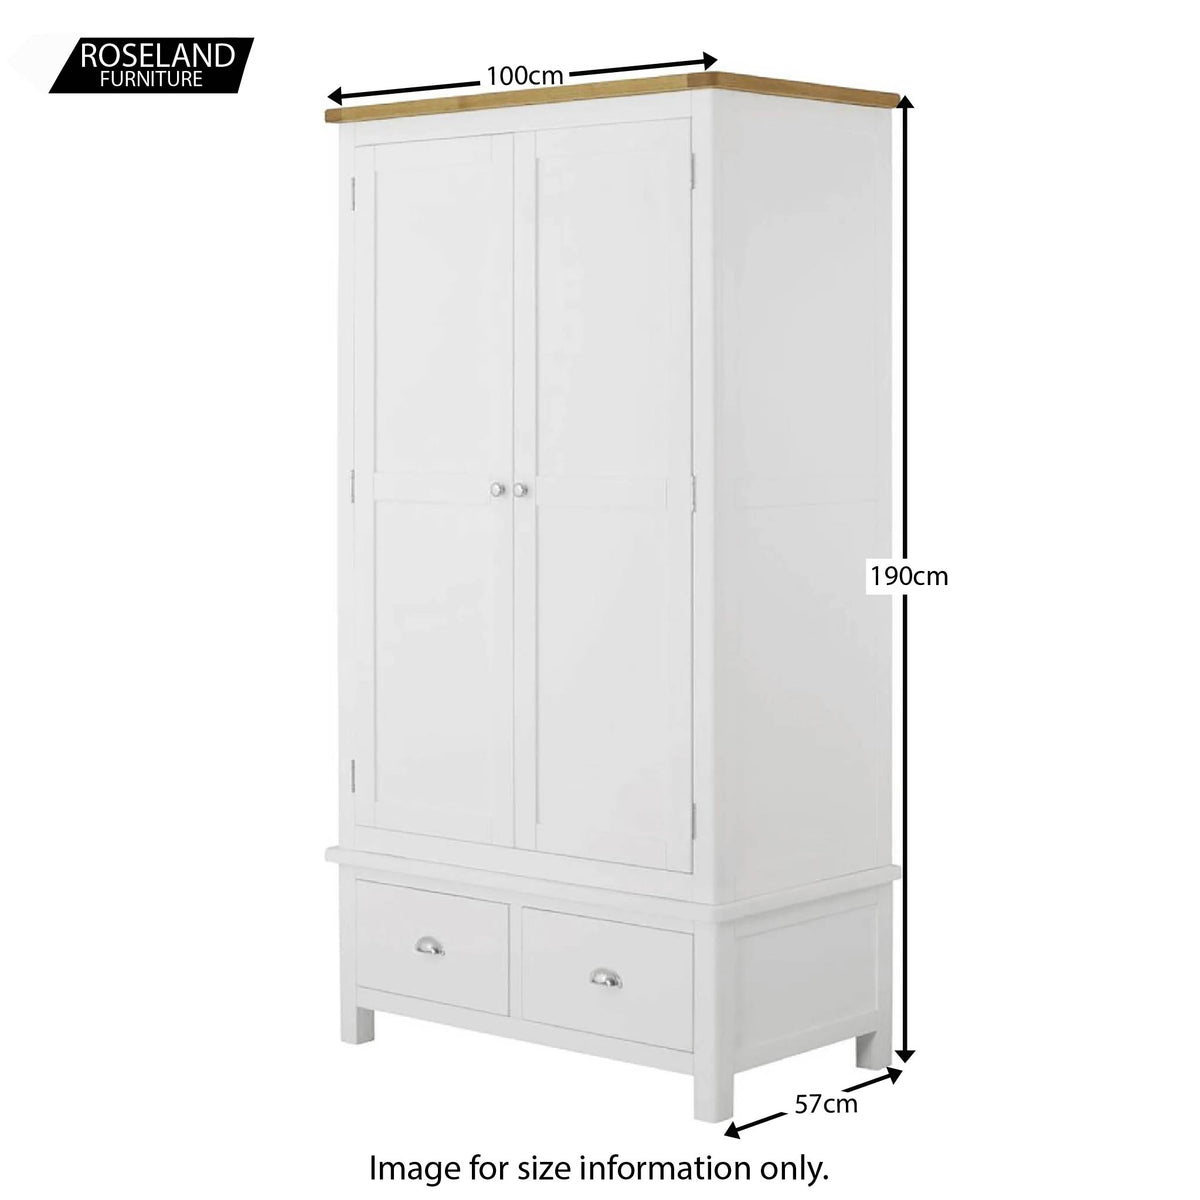 Padstow White Double Wardrobe with Drawers - Size Guide of overall piece